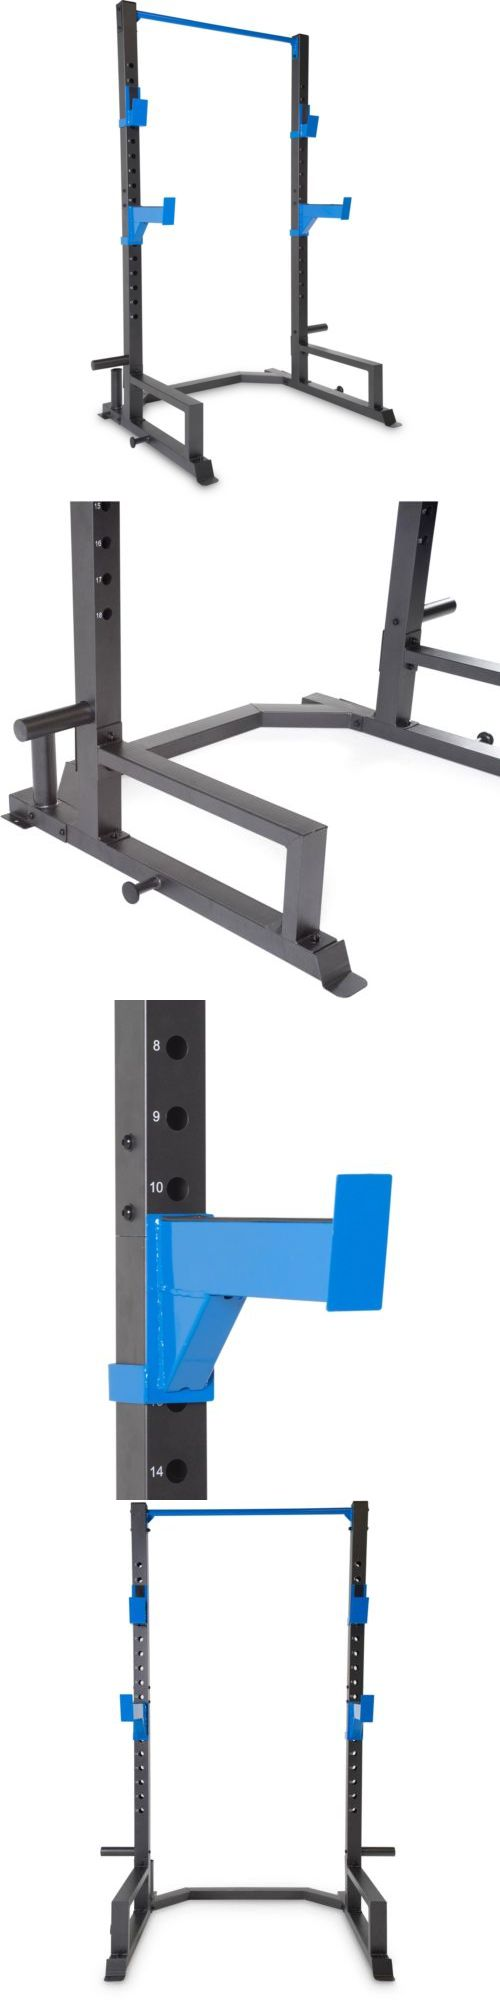 Power Racks and Smith Machines 179815: Power Lifting Cage Press Weight Rack Squat Fitness Pull Up Bench New -> BUY IT NOW ONLY: $201.13 on eBay!